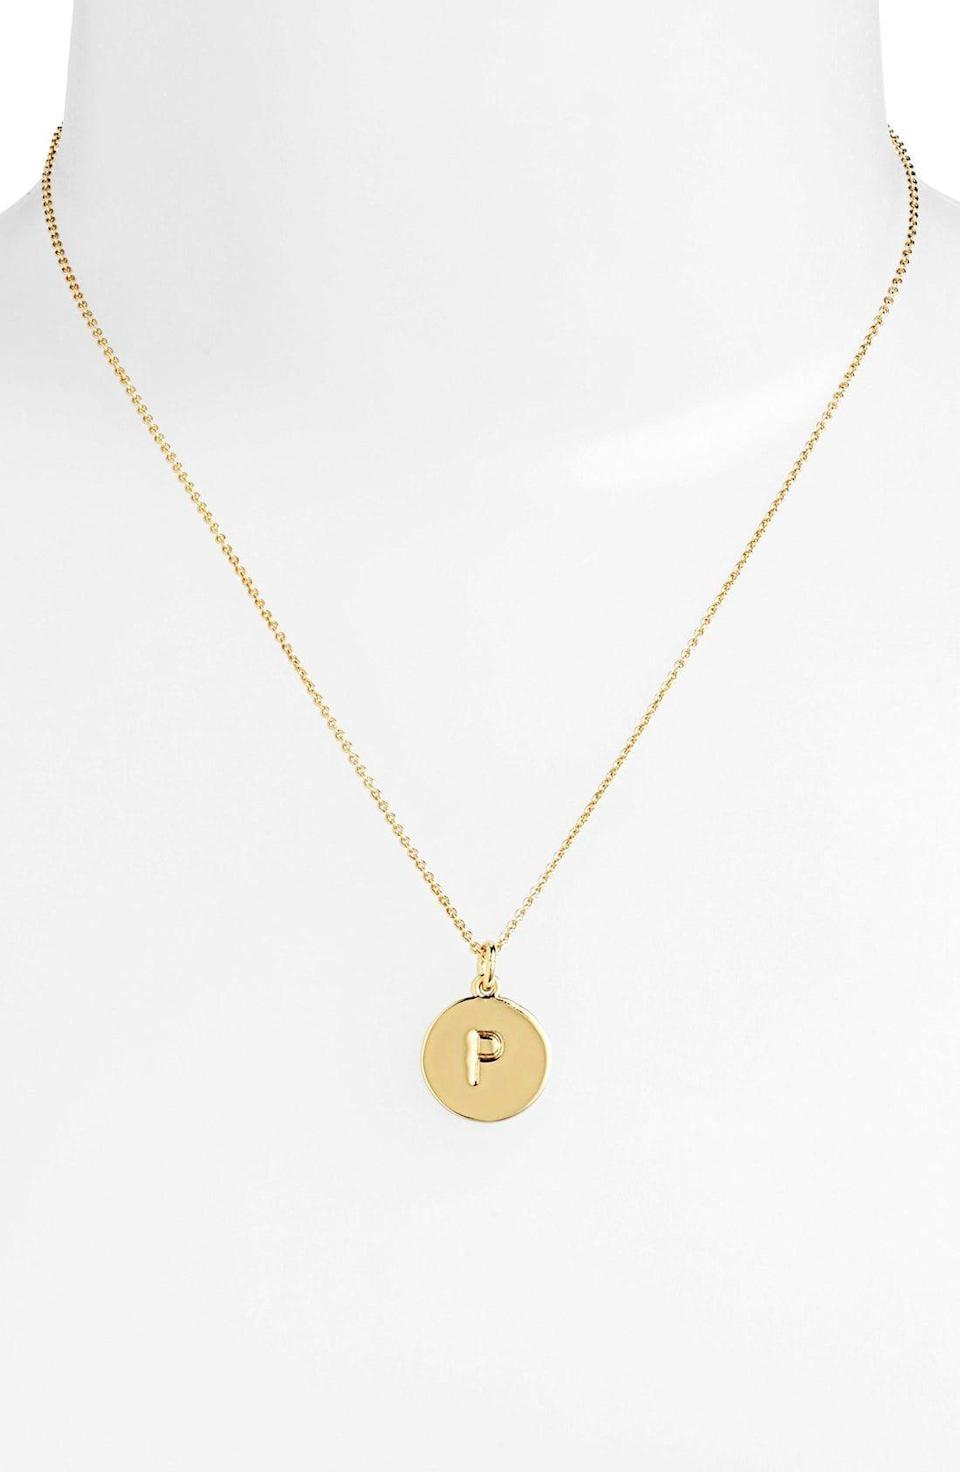 """<p><strong>KATE SPADE NEW YORK</strong></p><p>nordstrom.com</p><p><strong>$40.60</strong></p><p><a href=""""https://go.redirectingat.com?id=74968X1596630&url=https%3A%2F%2Fwww.nordstrom.com%2Fs%2Fkate-spade-new-york-one-in-a-million-initial-pendant-necklace%2F3628637&sref=https%3A%2F%2Fwww.thepioneerwoman.com%2Fholidays-celebrations%2Fgifts%2Fg35434525%2Fgifts-for-grandma%2F"""" rel=""""nofollow noopener"""" target=""""_blank"""" data-ylk=""""slk:Shop Now"""" class=""""link rapid-noclick-resp"""">Shop Now</a></p><p>A simple, dainty necklace with a personalized touch is a gift <em>and</em> grandma would enjoy. </p>"""